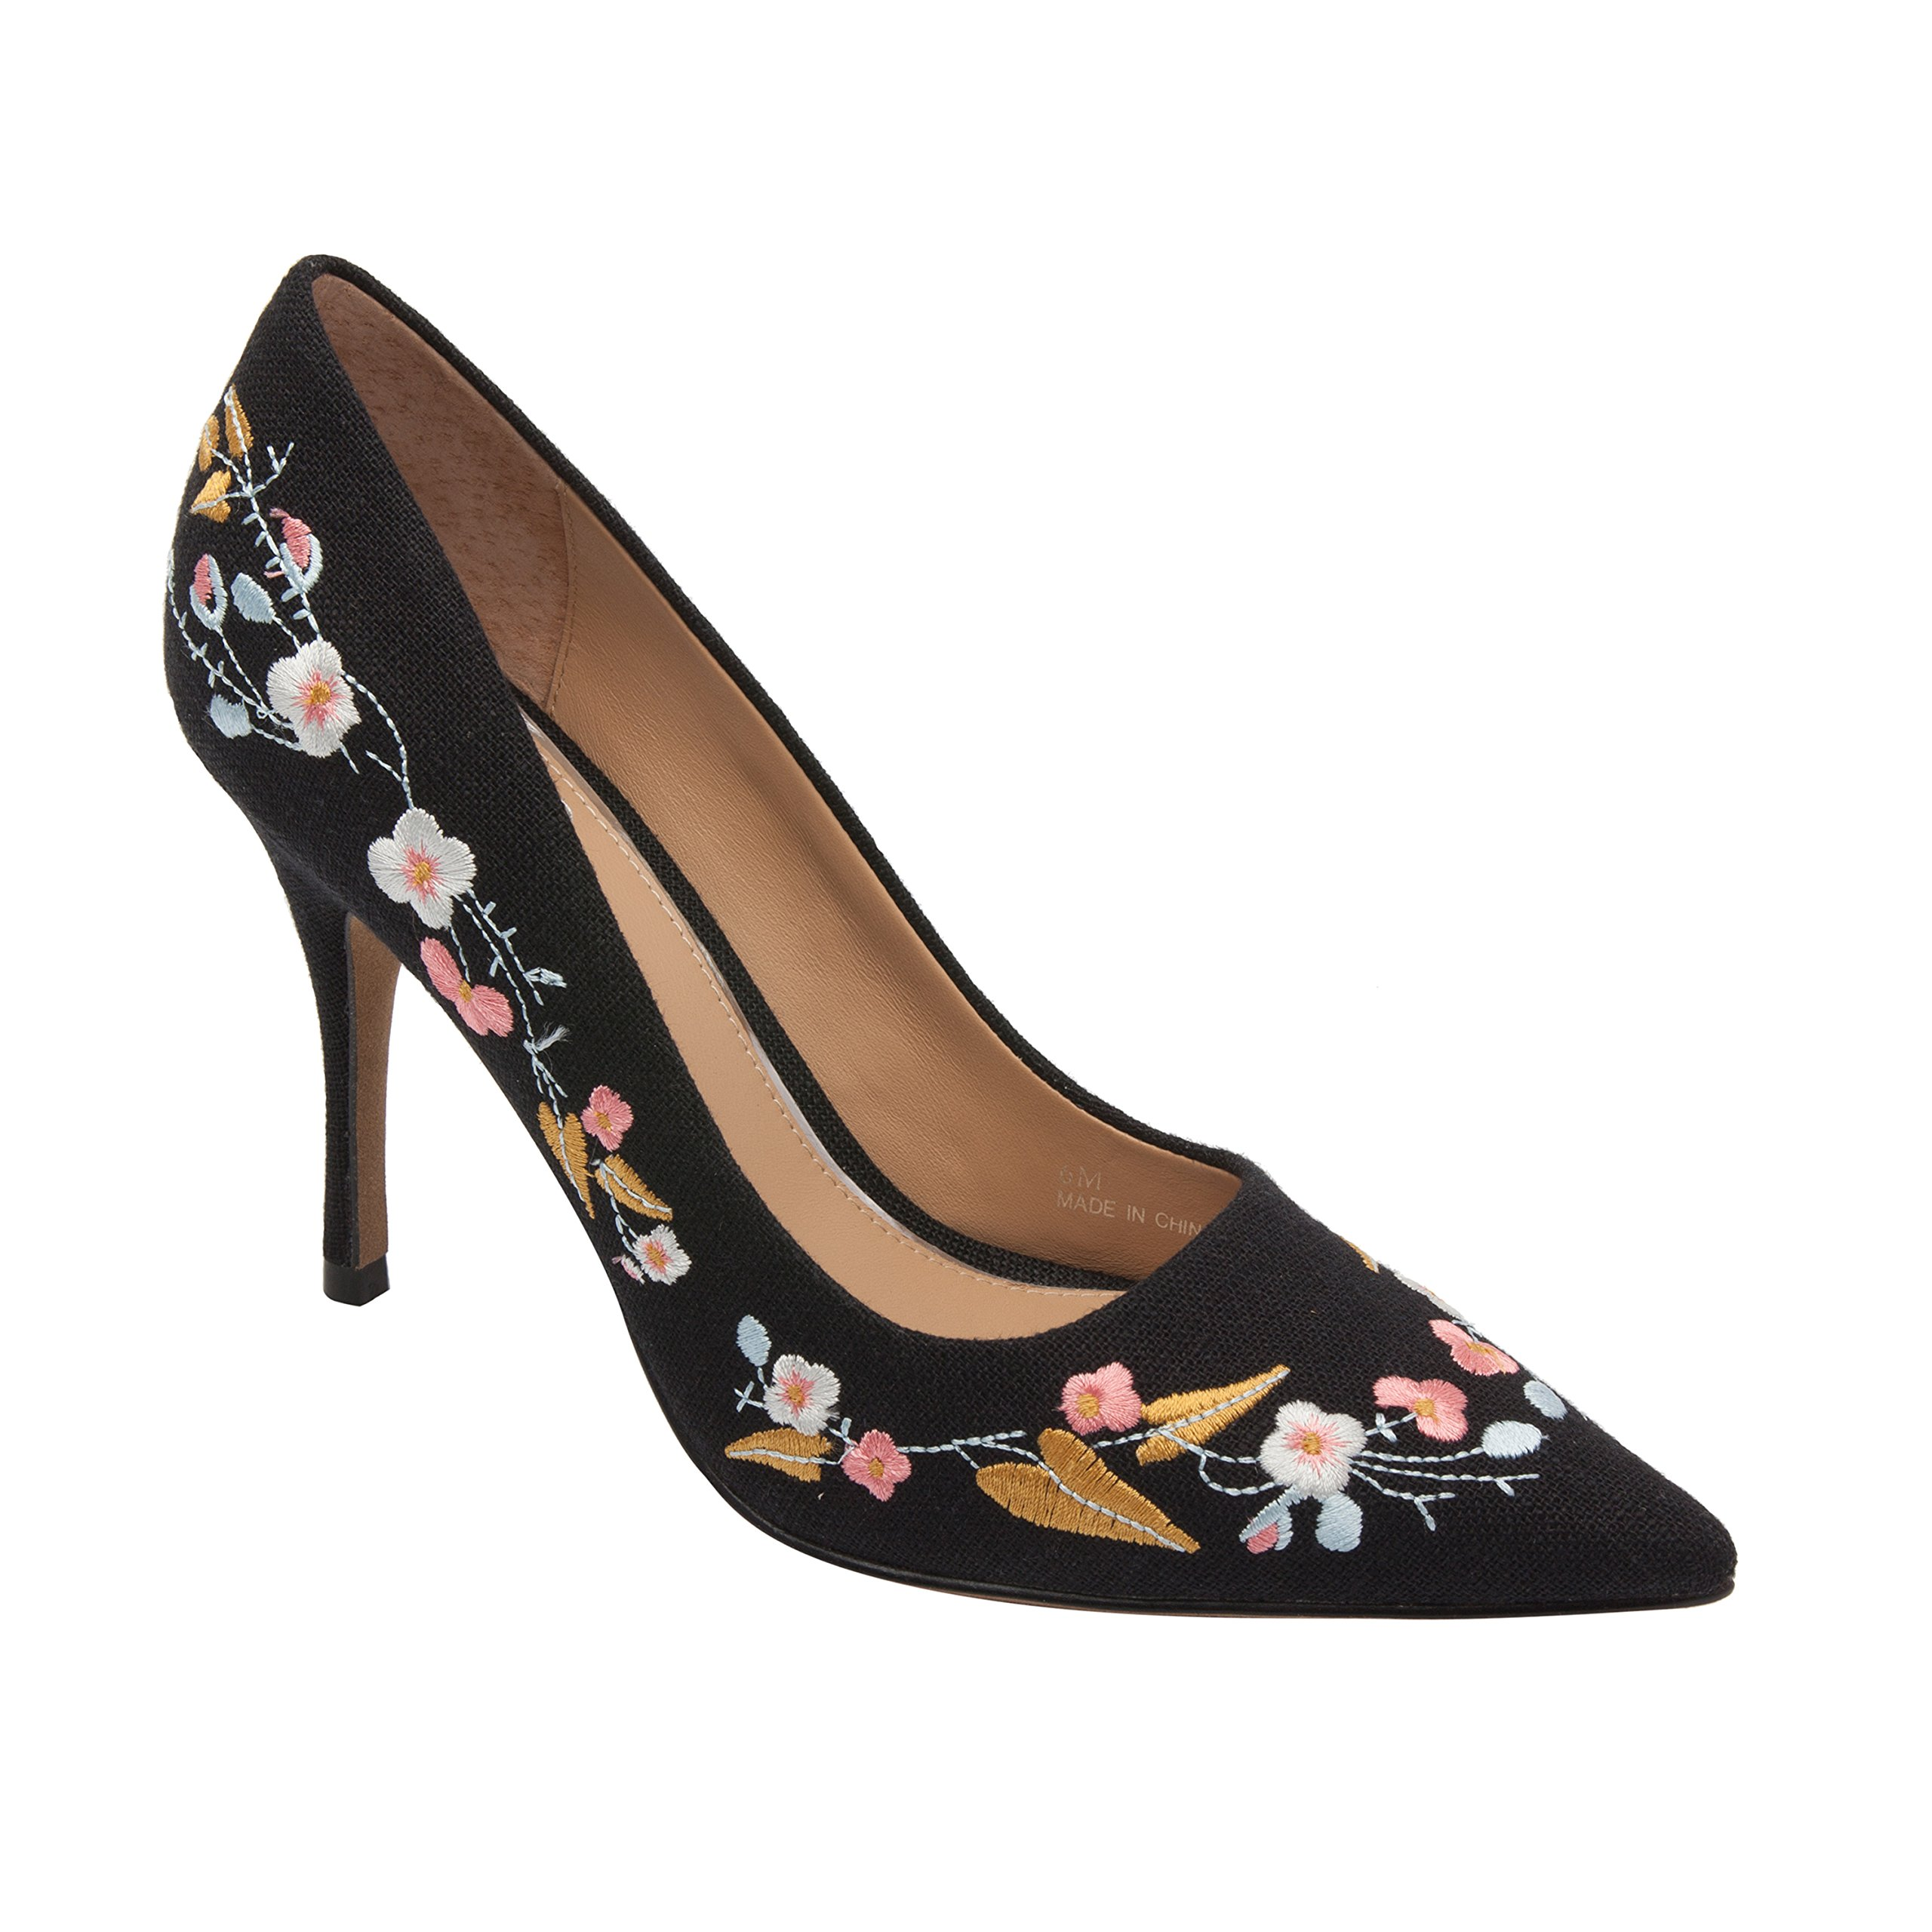 Linea Paolo Paisley | Women's Textile Pointy Toe Floral Embroidered Comfortable Pump (New Spring) Black Fabric 9.5M